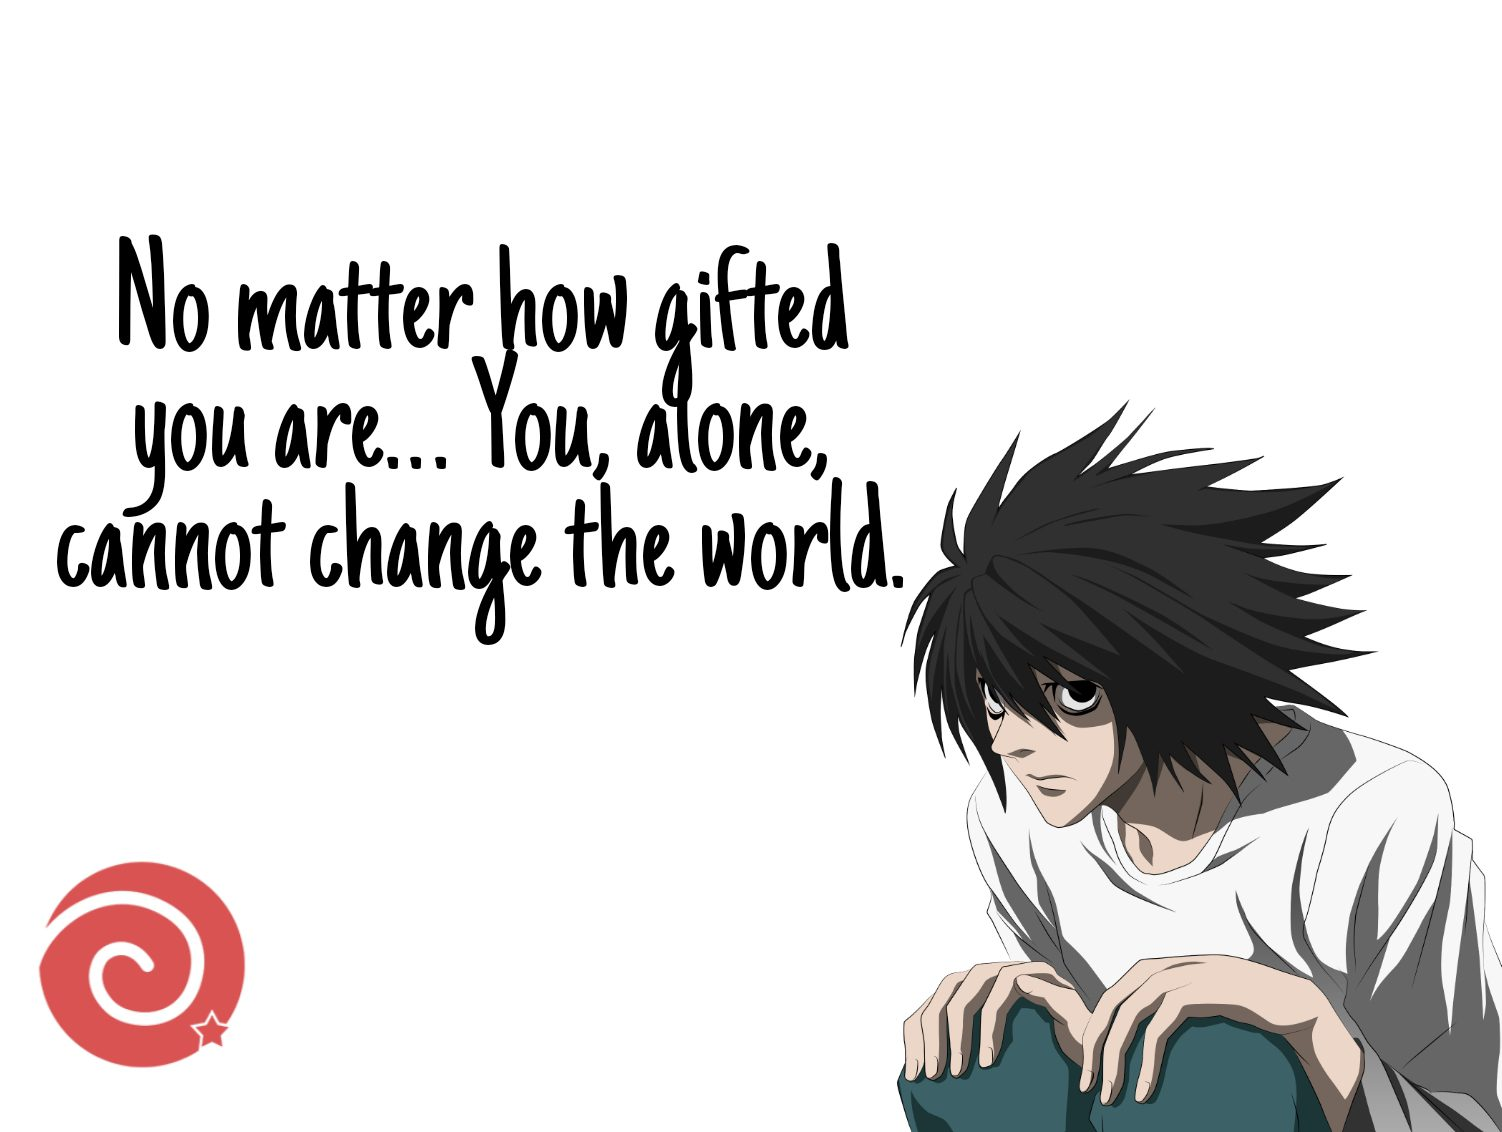 Quotes from Death note